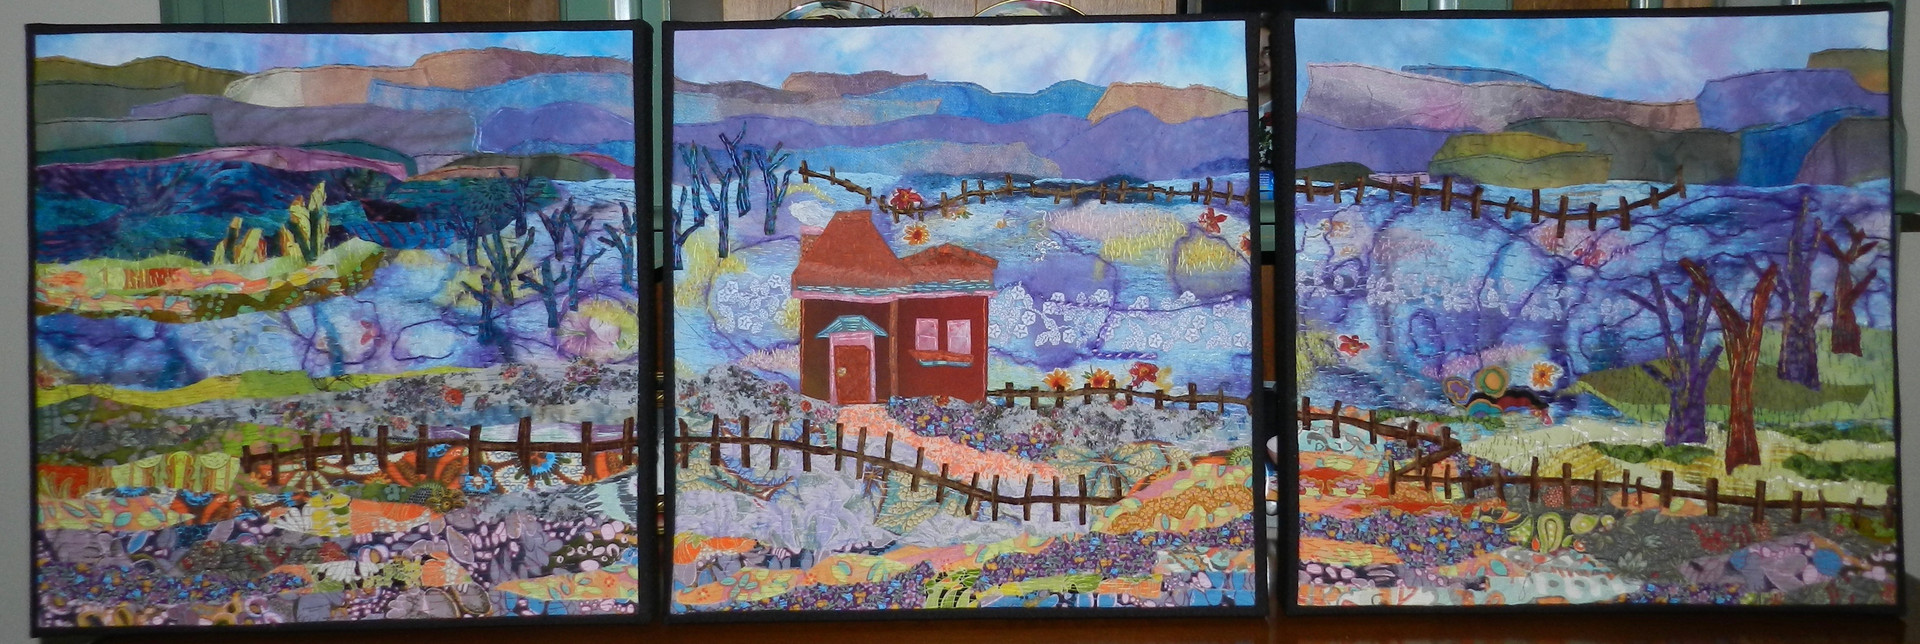 Spring at the Homestead Triptych